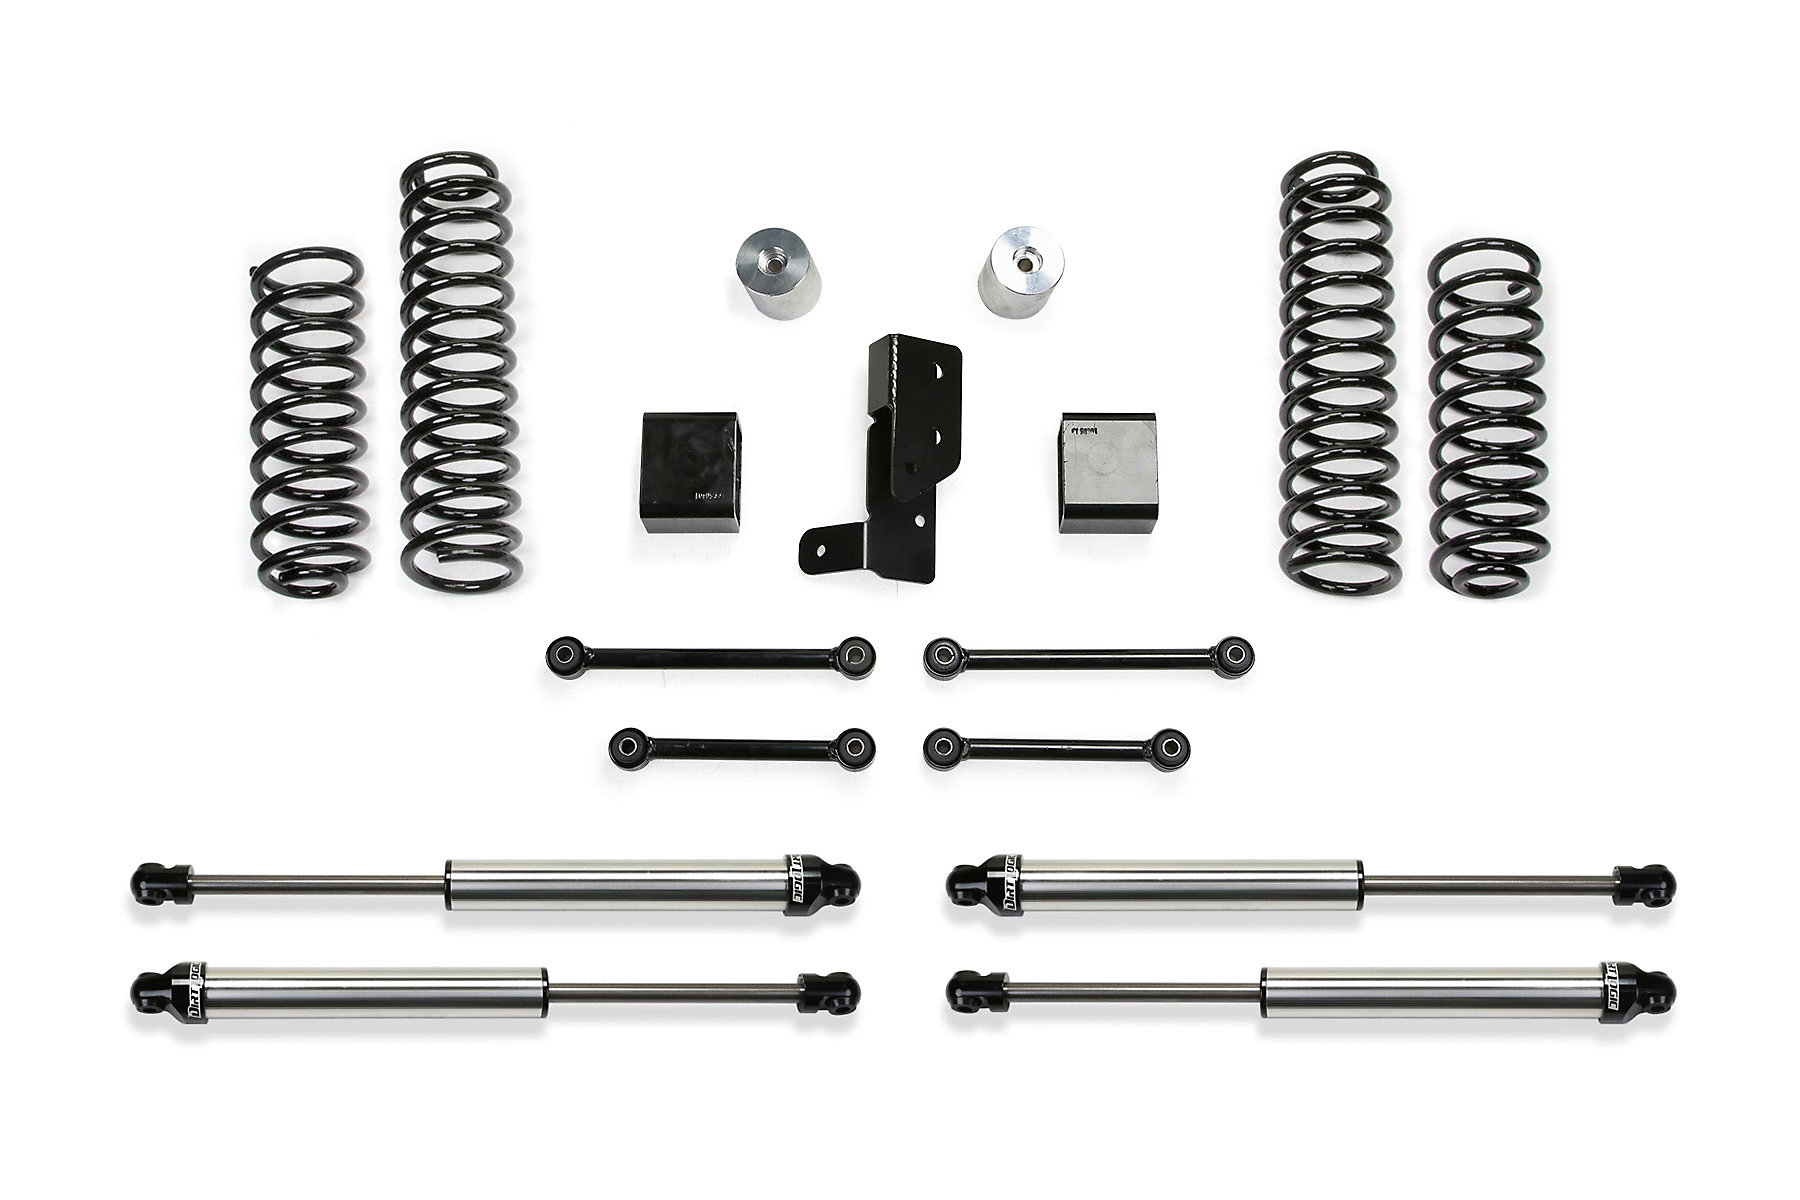 Fabtech 3 Sport Lift Kit With Dirt Logic 2 25 Shocks For 18 19 Jeep Wrangler Jl 4 Door